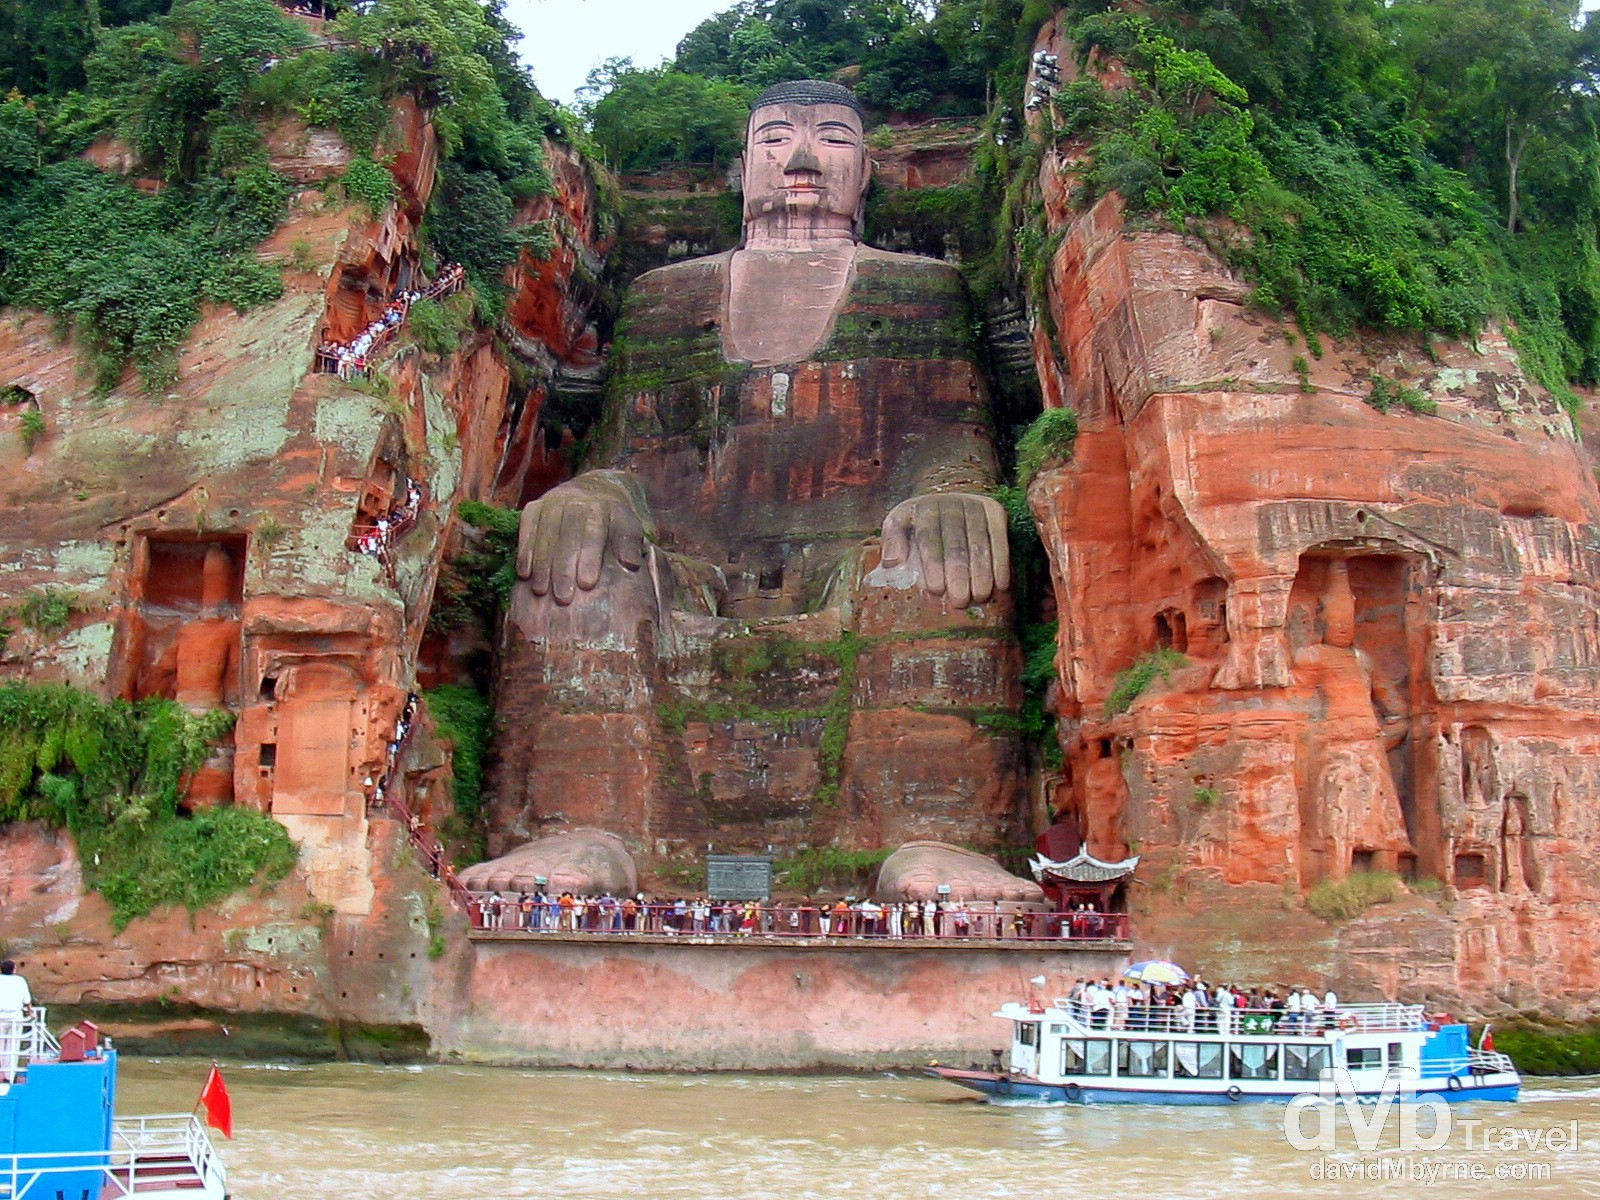 Dafo, The Giant Buddha, as seen from the confluence of the Minjiang, Dadu & Qingyi rivers just outside Leshan in Sichuan Province, China. September 20th, 2004